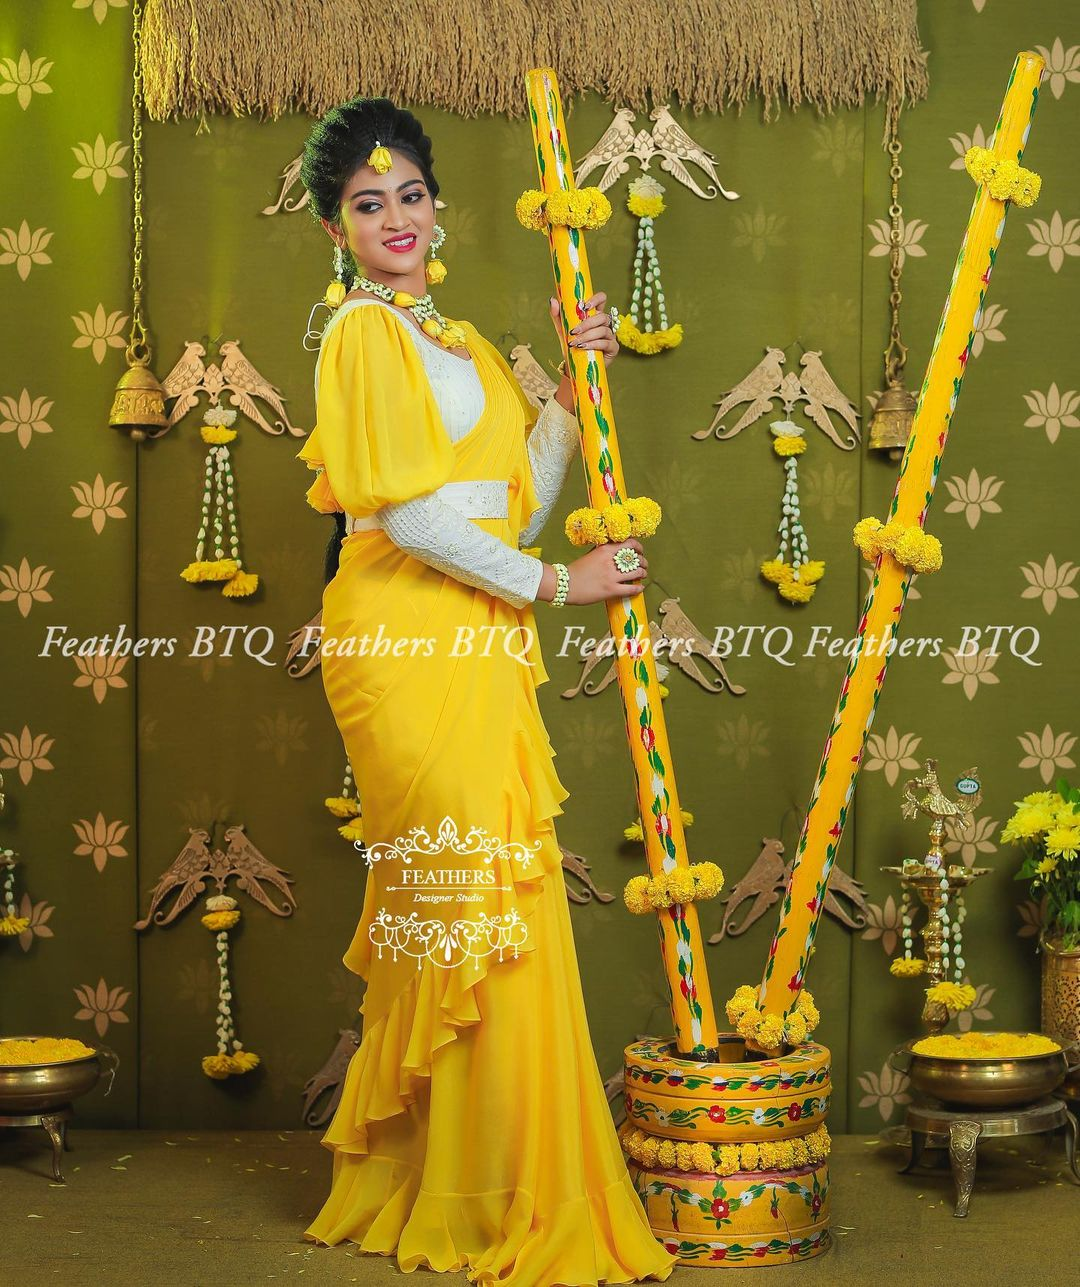 Stunning yellow color ruffle saree and white full sleeves blouse with wasit belt. 2021-04-28